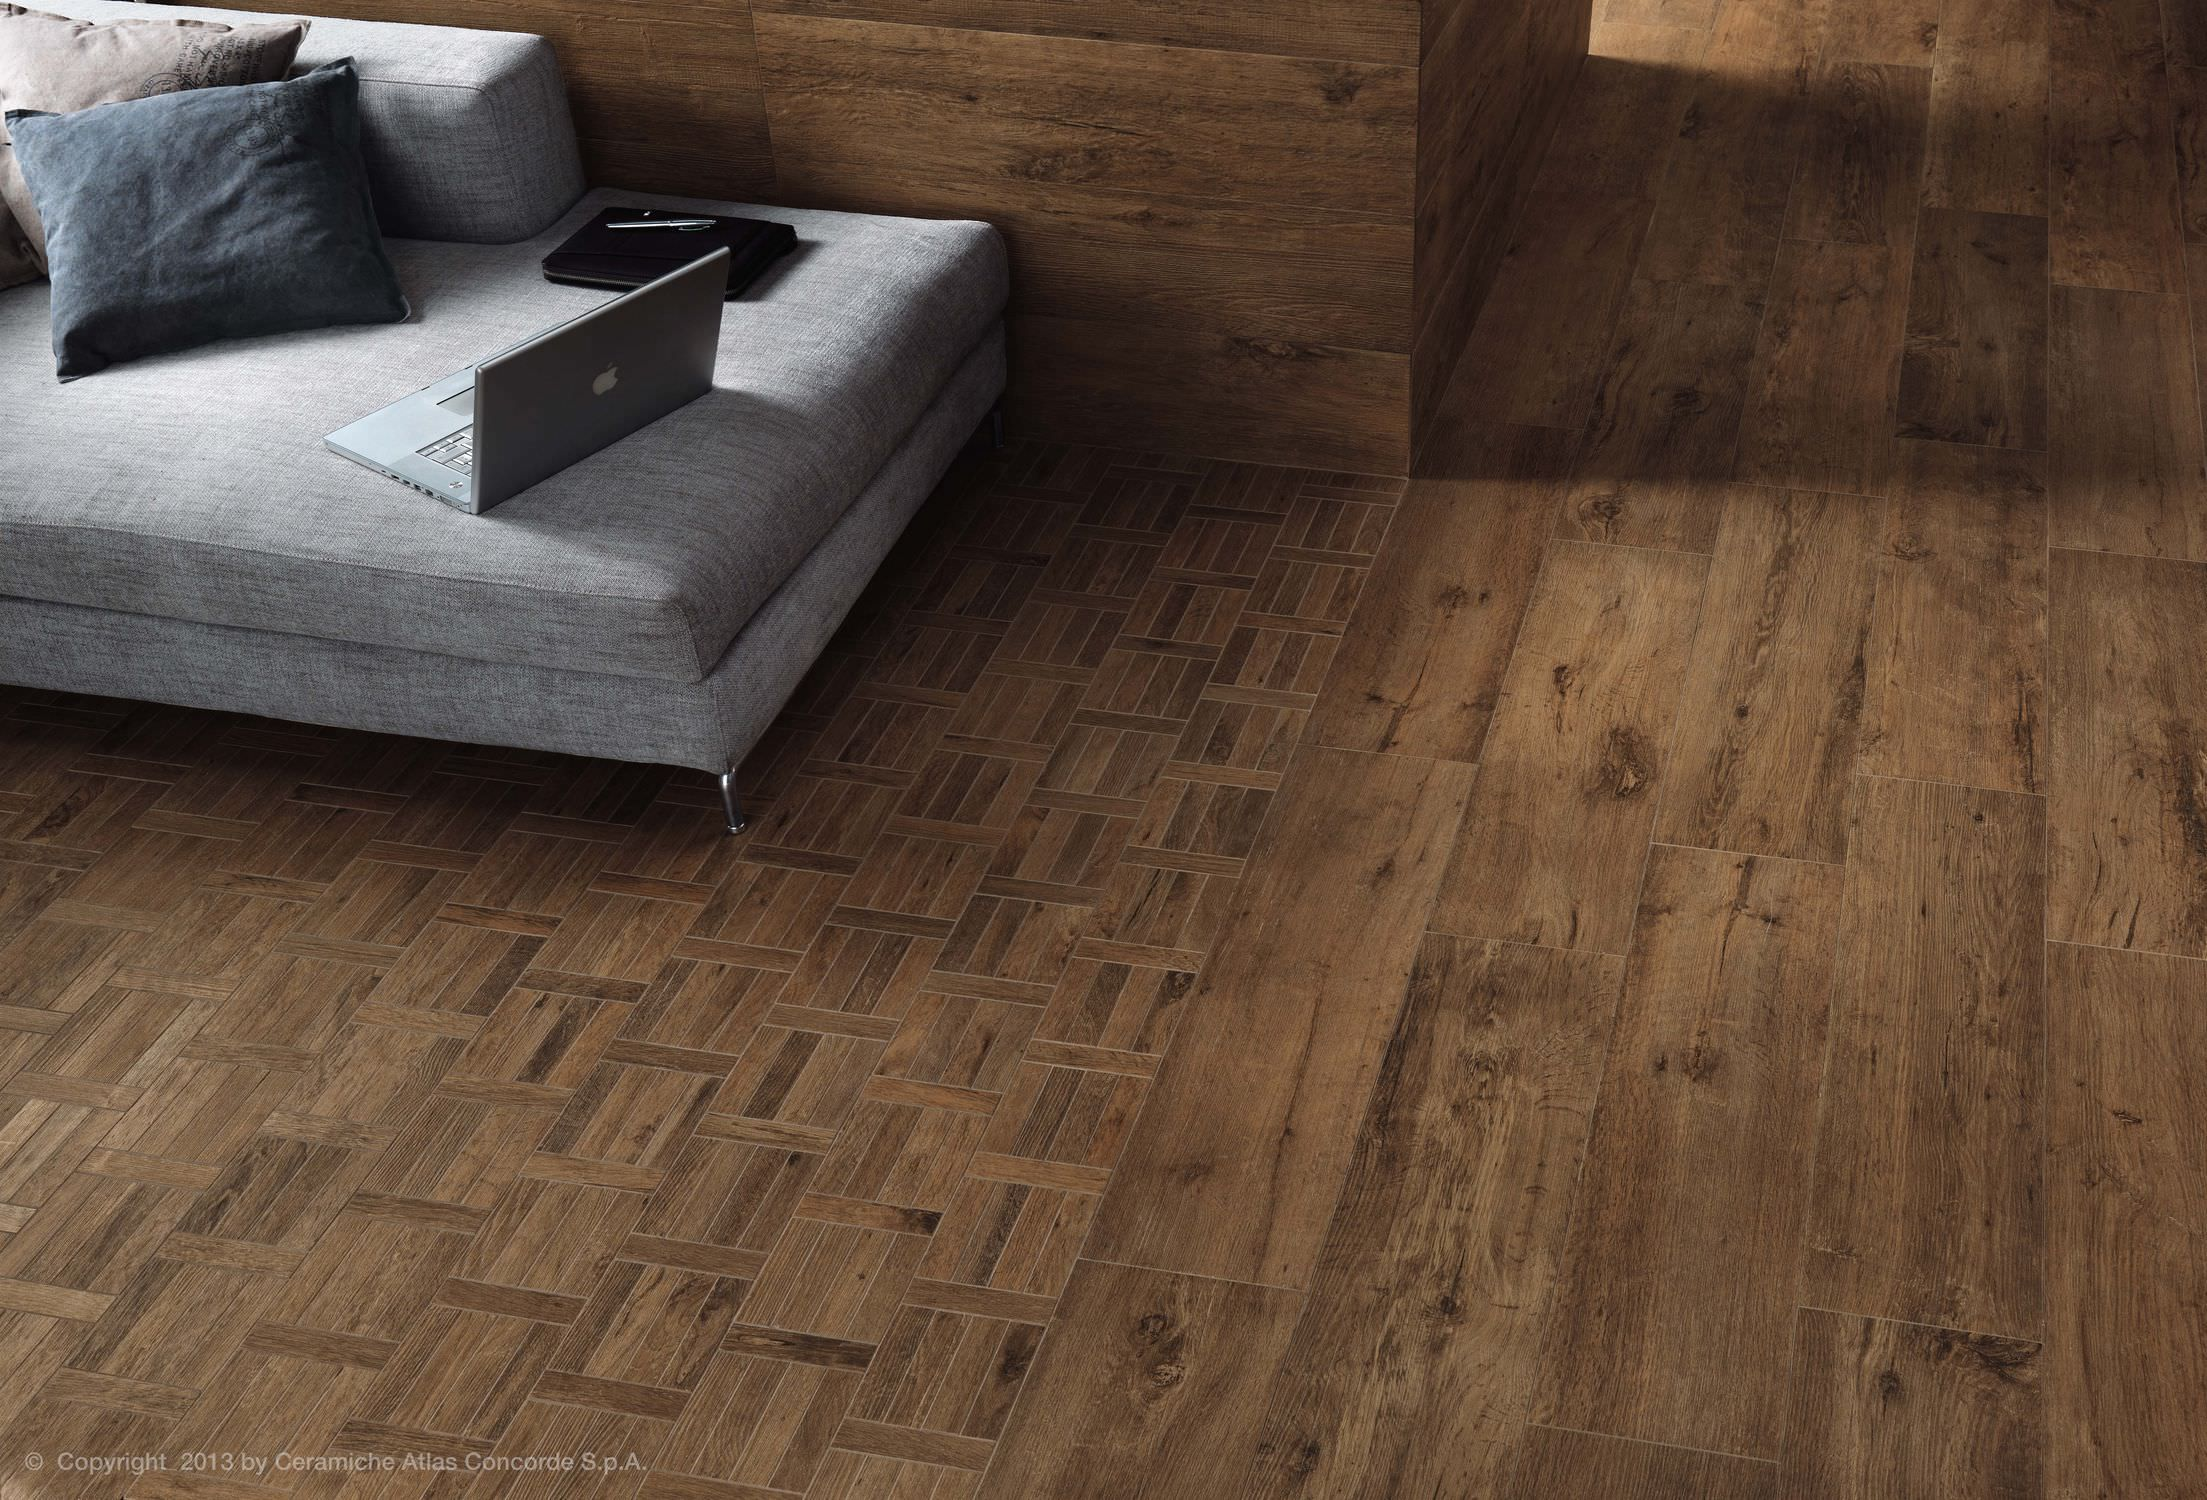 Elegant wood look tile floors family room design with white elegant wood look tile floors family room design with white comfortable grey fabric sofas with simple dailygadgetfo Choice Image